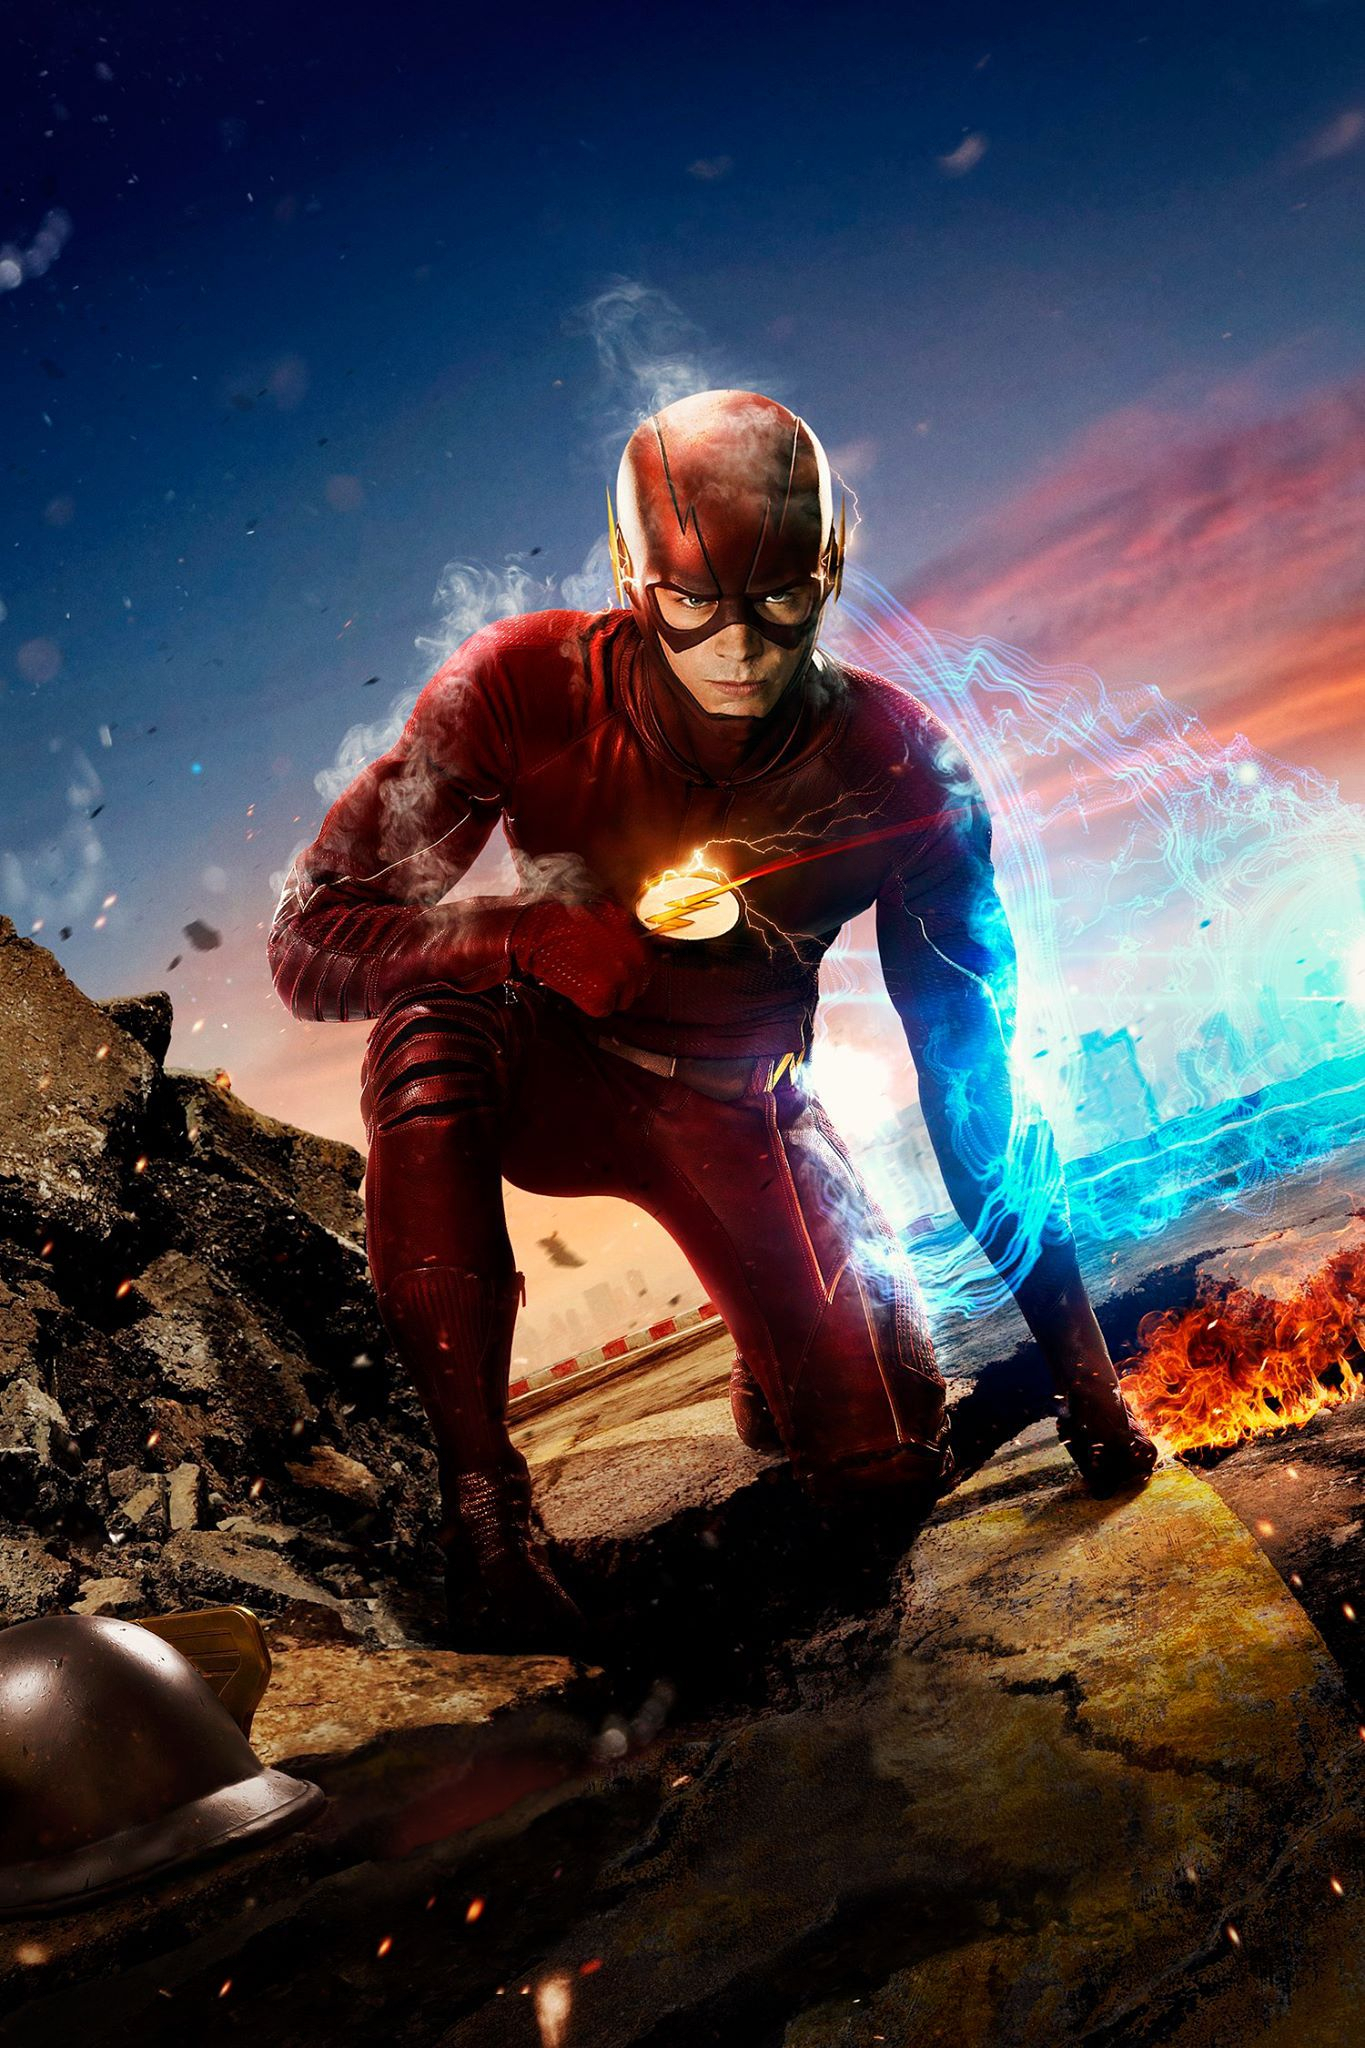 the flash hd wallpaper, the flash wallpaper 1920x1080